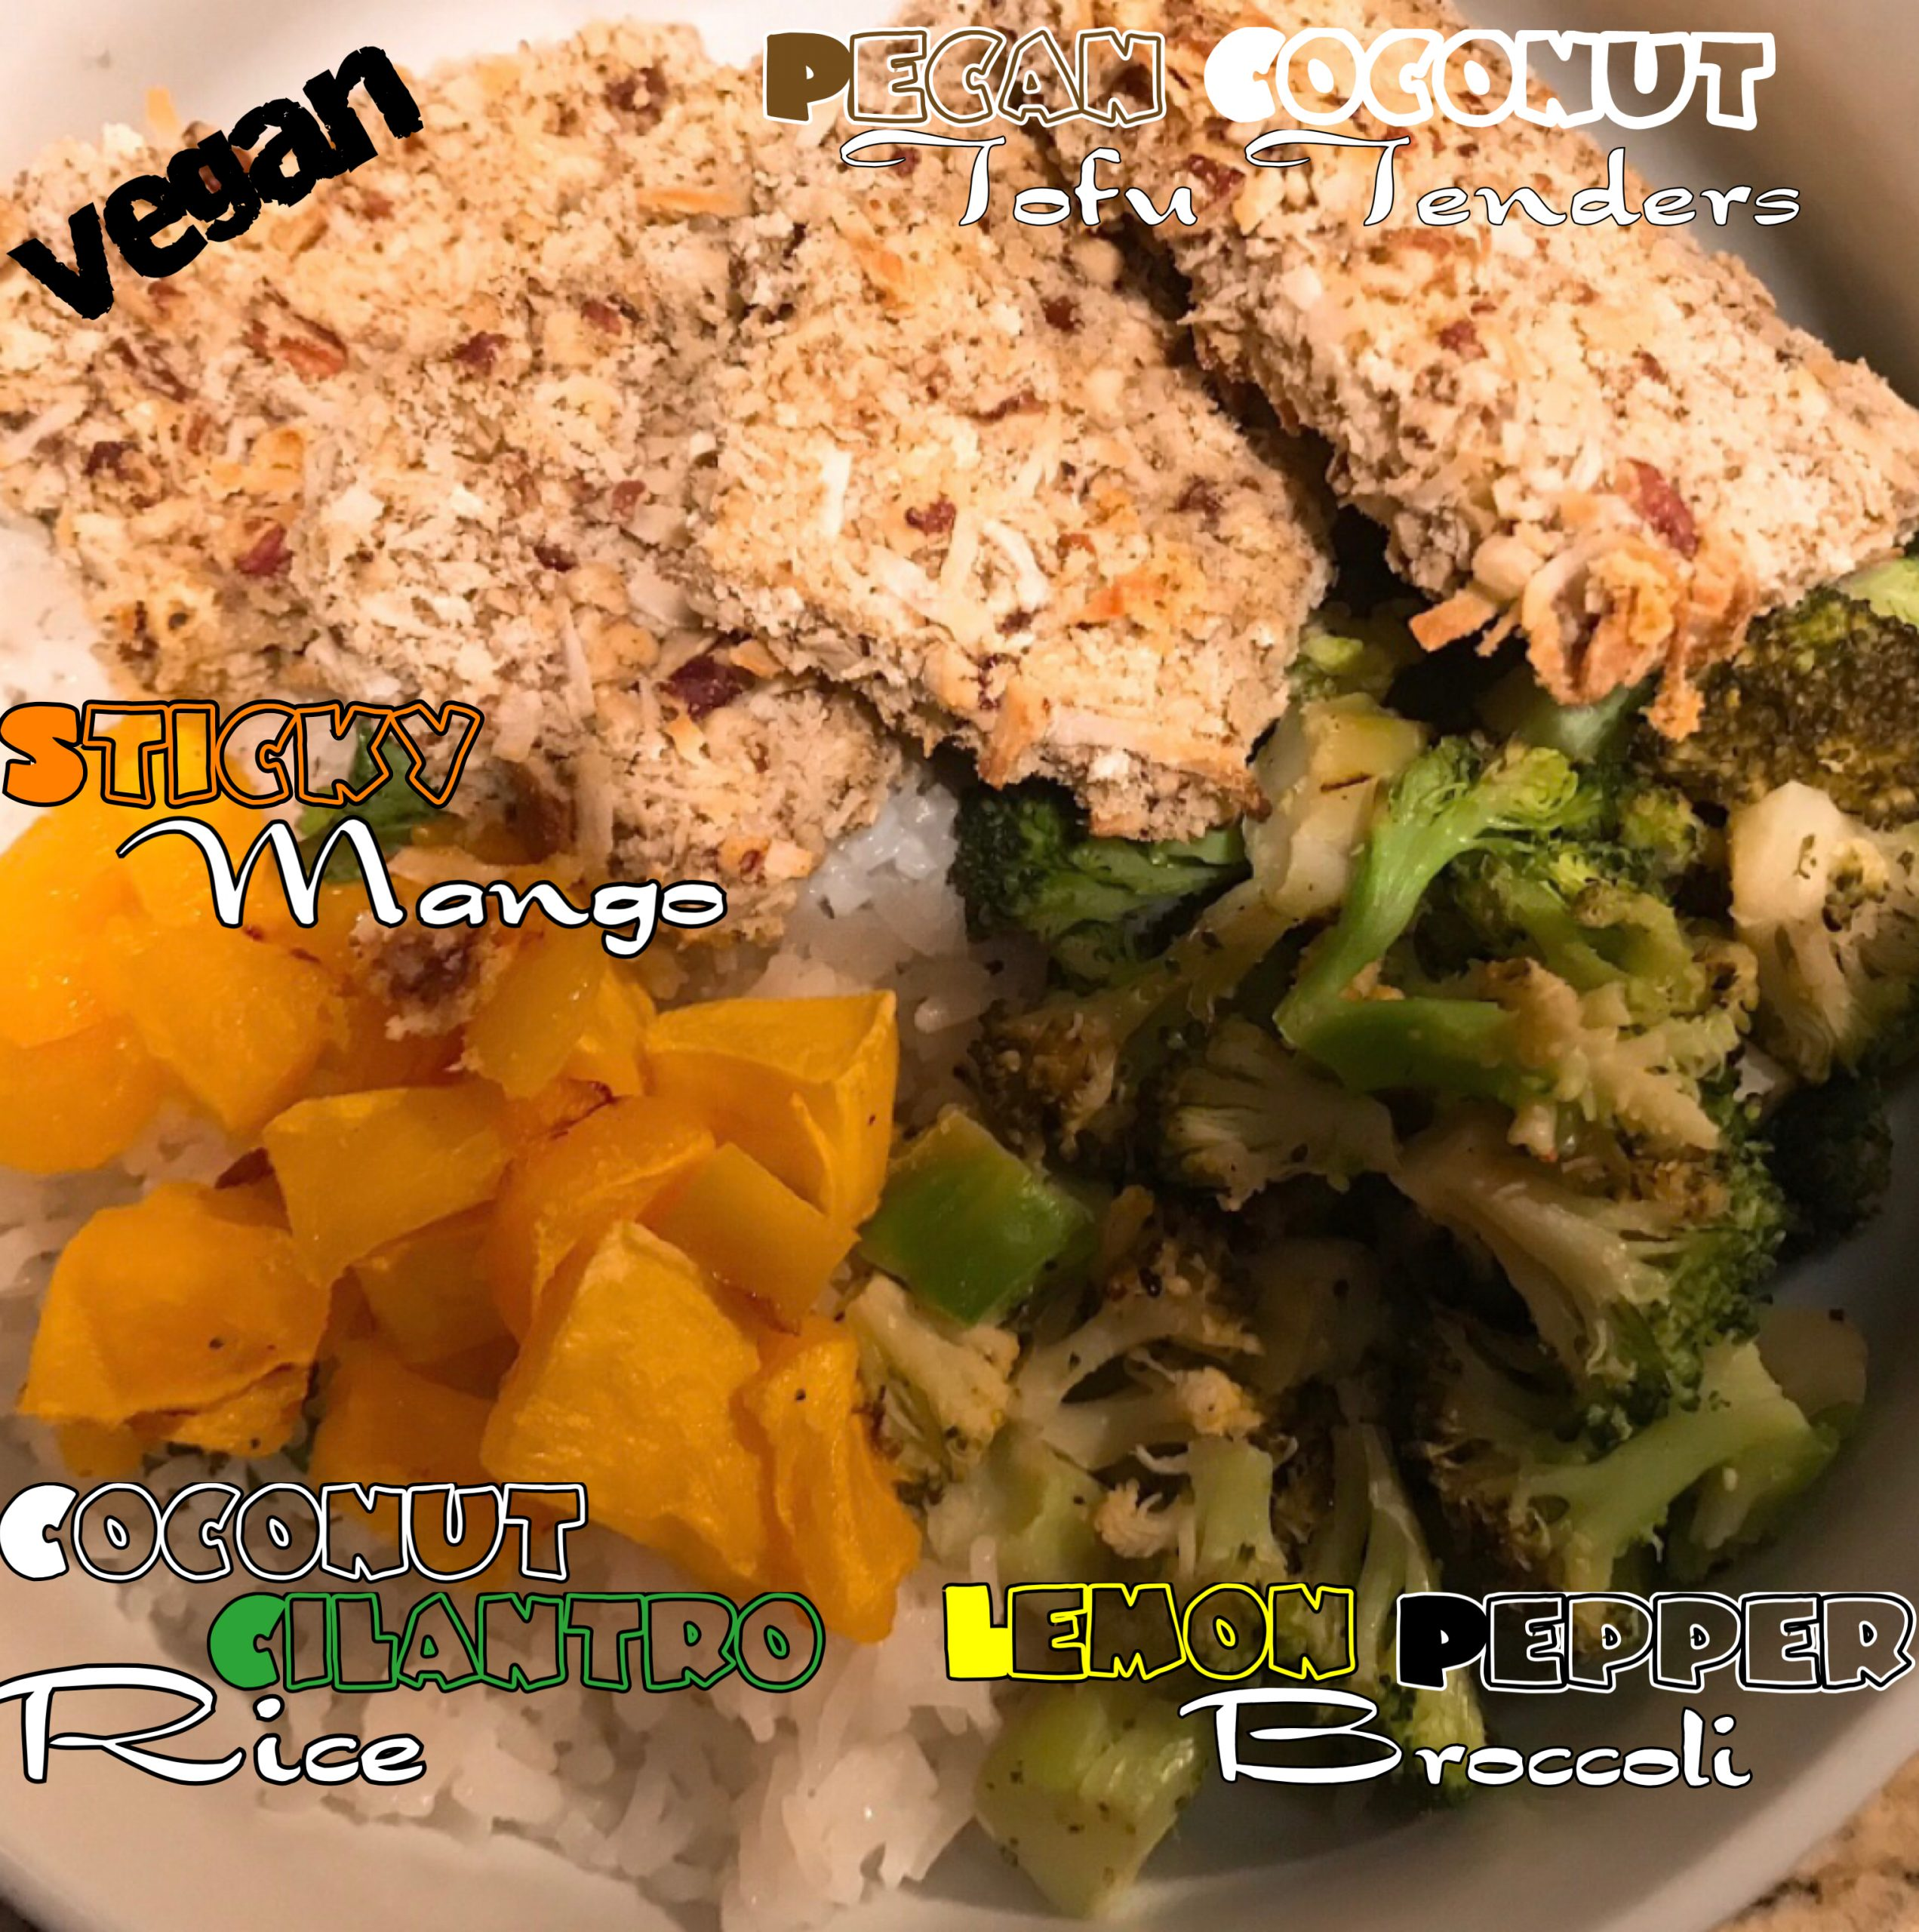 Vegan Pecan Coconut Tofu Tenders with Lemon Pepper Broccoli, Sticky Mango & Coconut Cilantro Rice